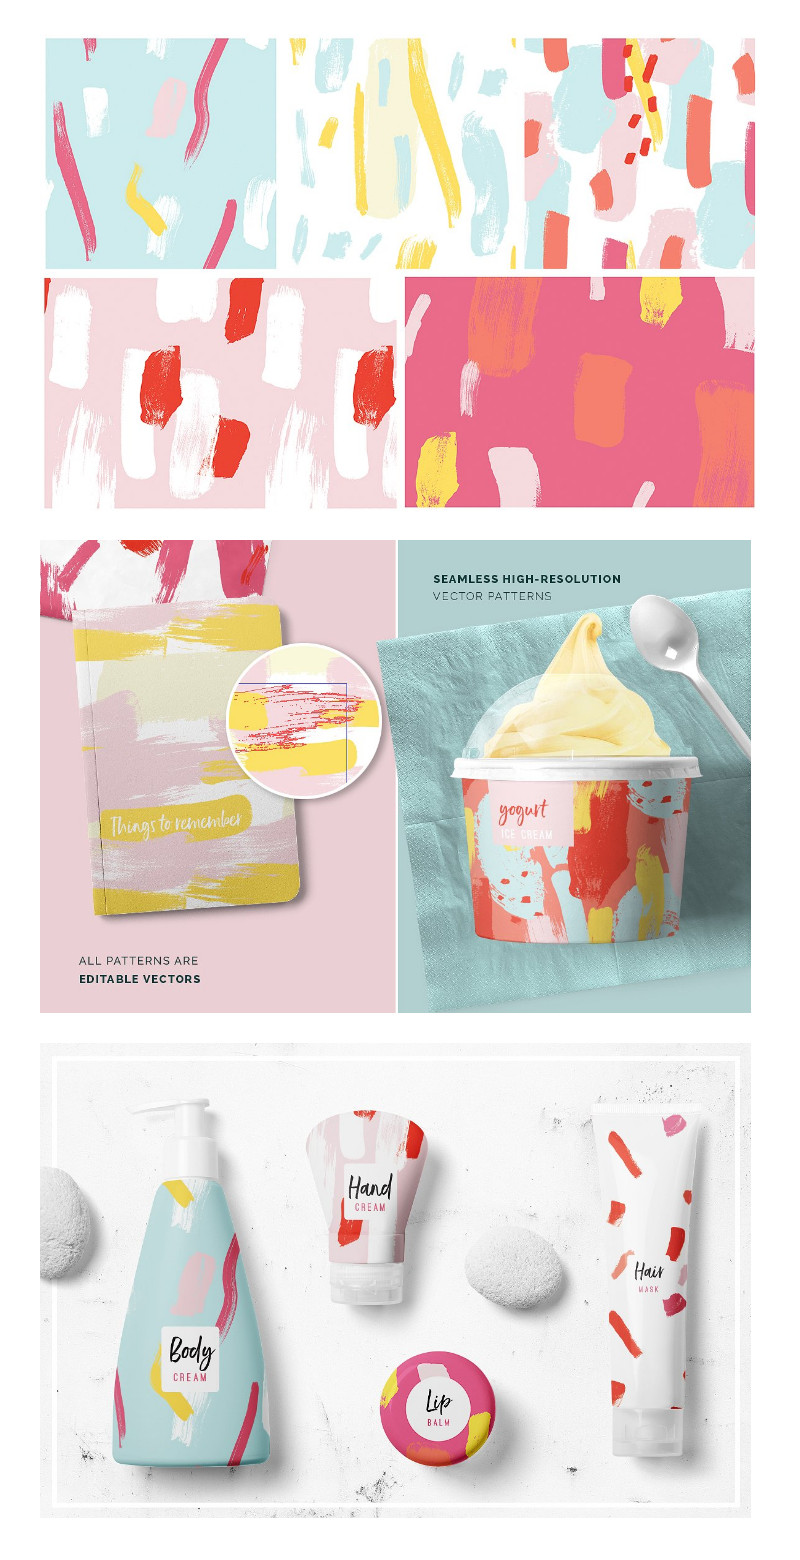 watercolor-patterns-graphic design patterns